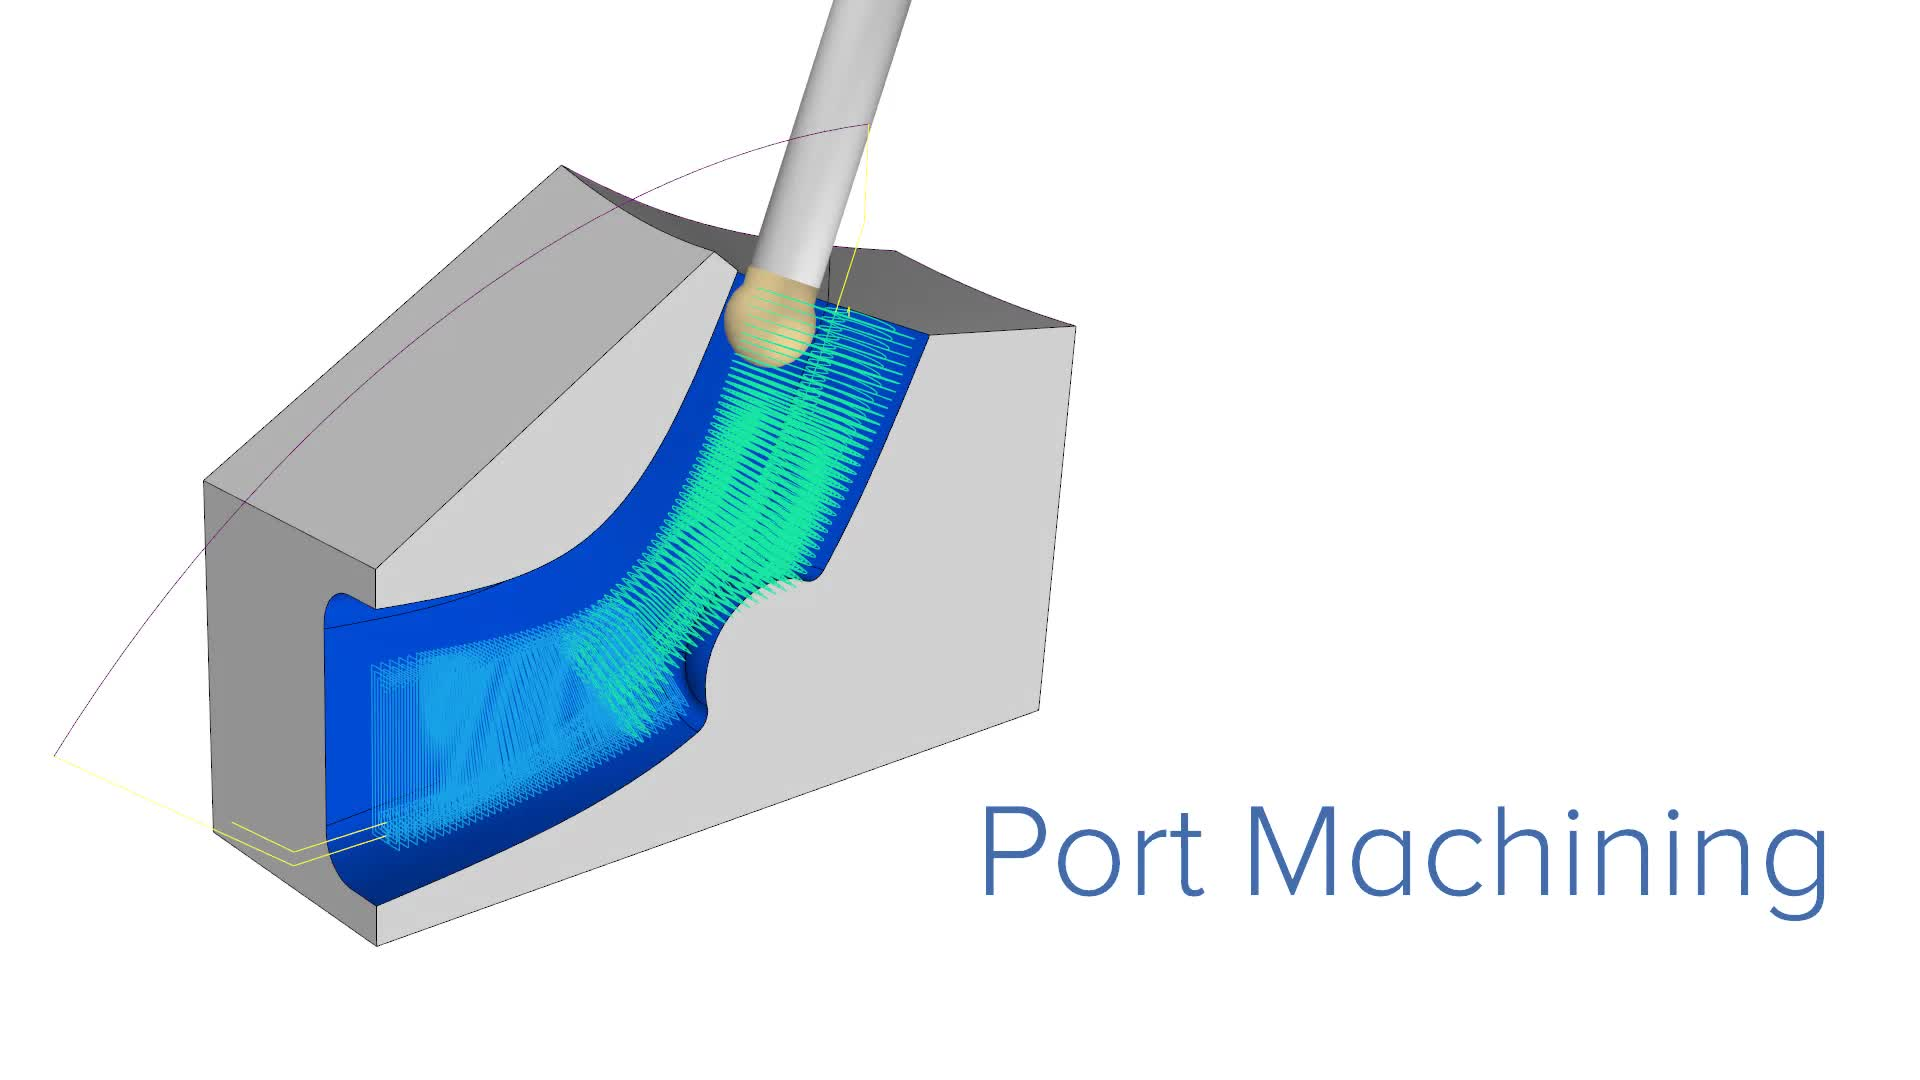 Port Machining